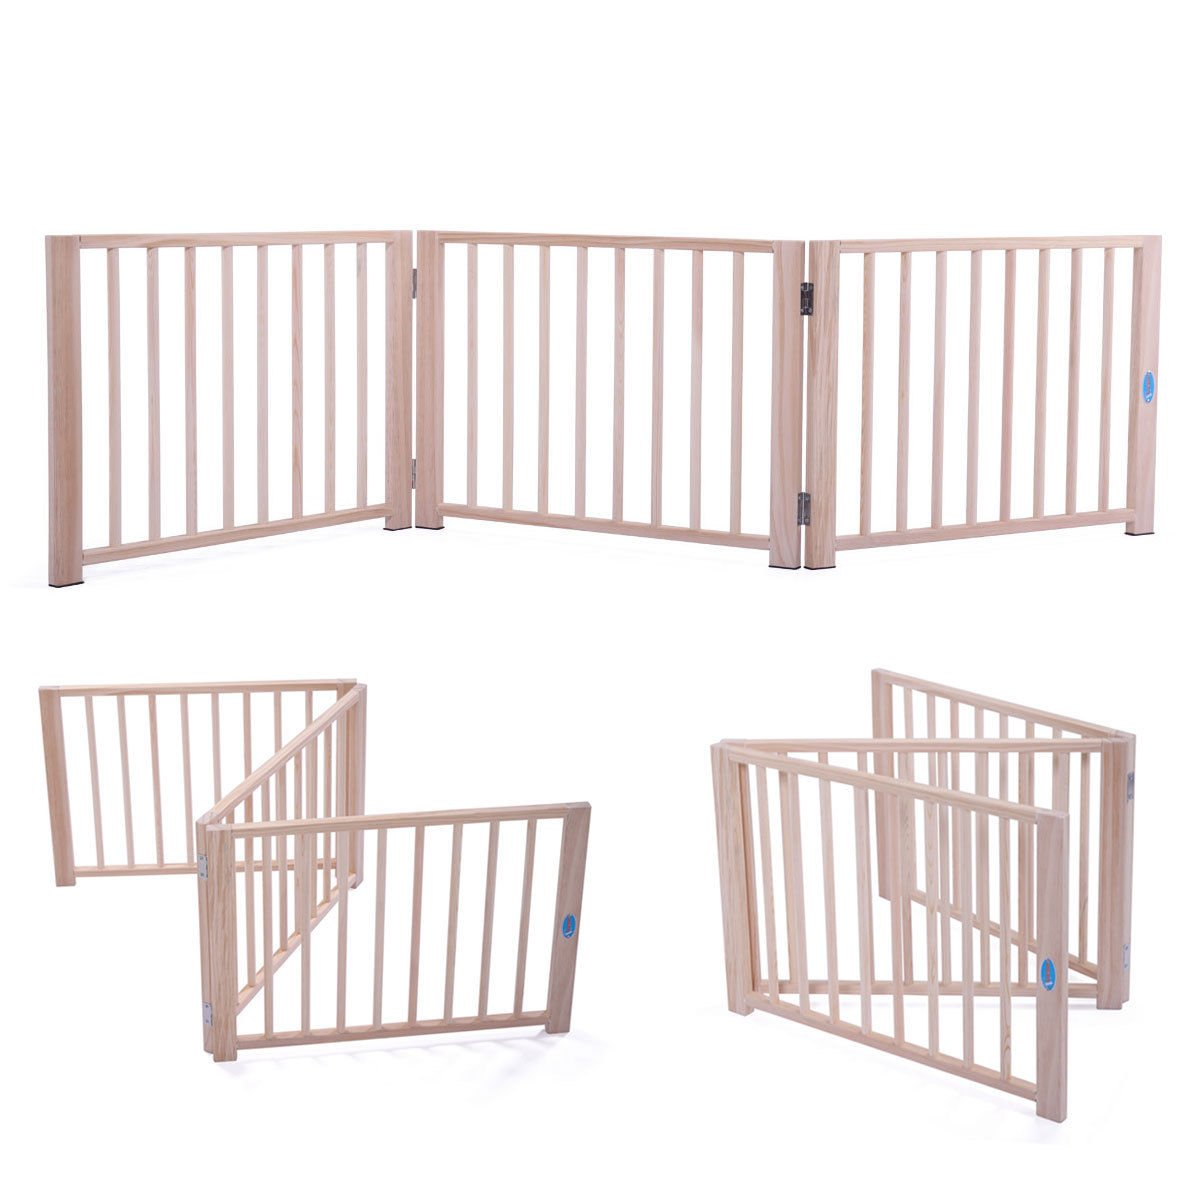 JAXPETY 17.5'' Baby Gate Indoor Fence Barrier Standing Wood Folding Safety 3 Panel Pet